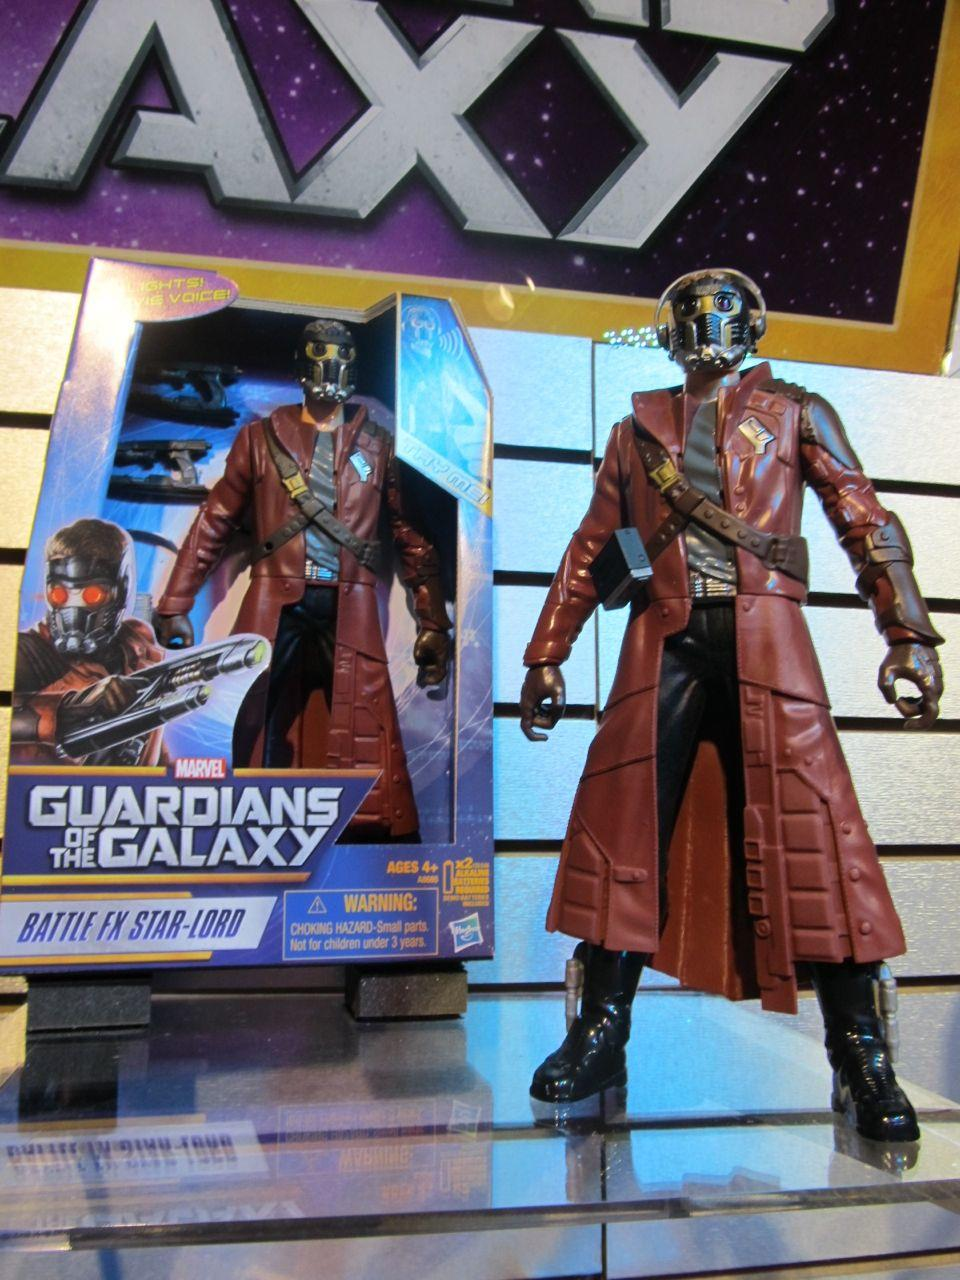 hr_Hasbro_Guardians_of_the_Galaxy_40.jpg